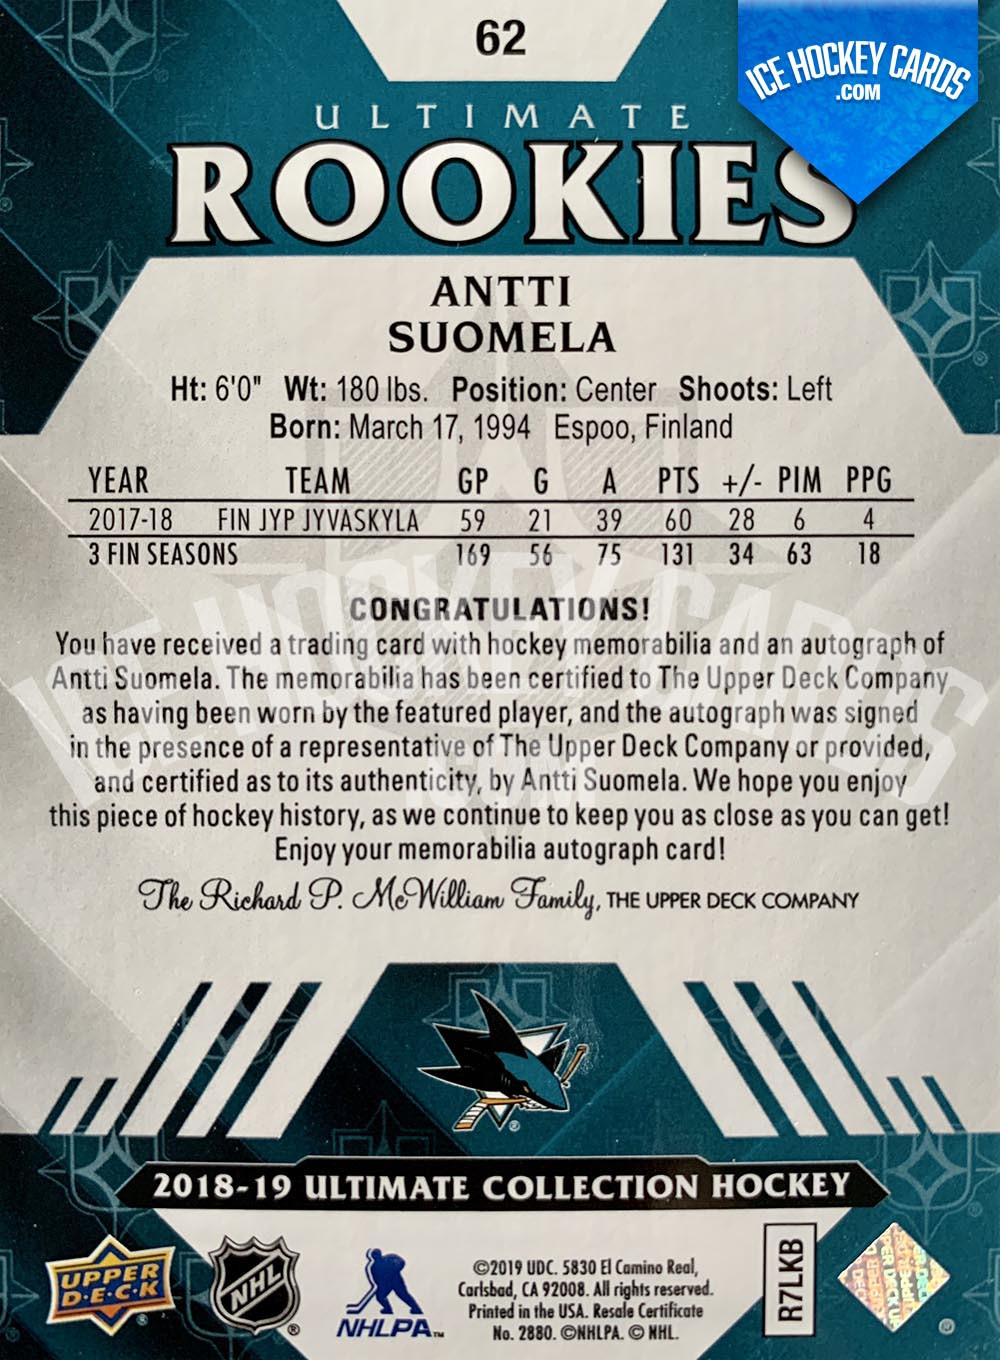 Upper Deck - Ultimate Collection 2018-19 - Antti Suomela Ultimate Rookies Auto Patch Card RARE back